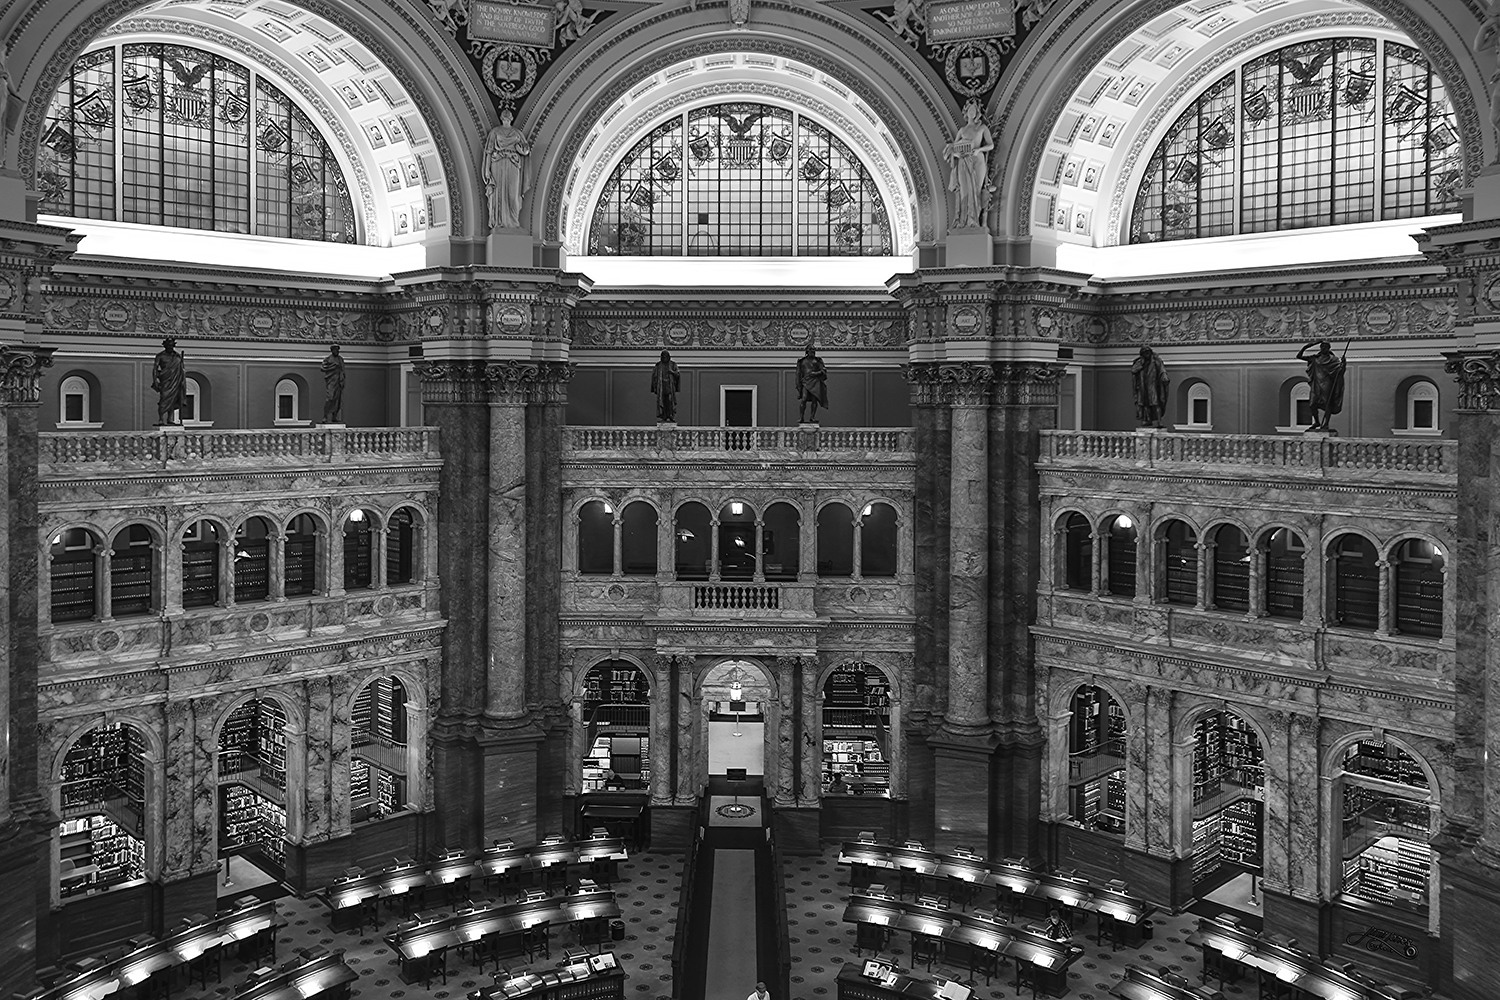 Library of Congress - Black and White.jpg